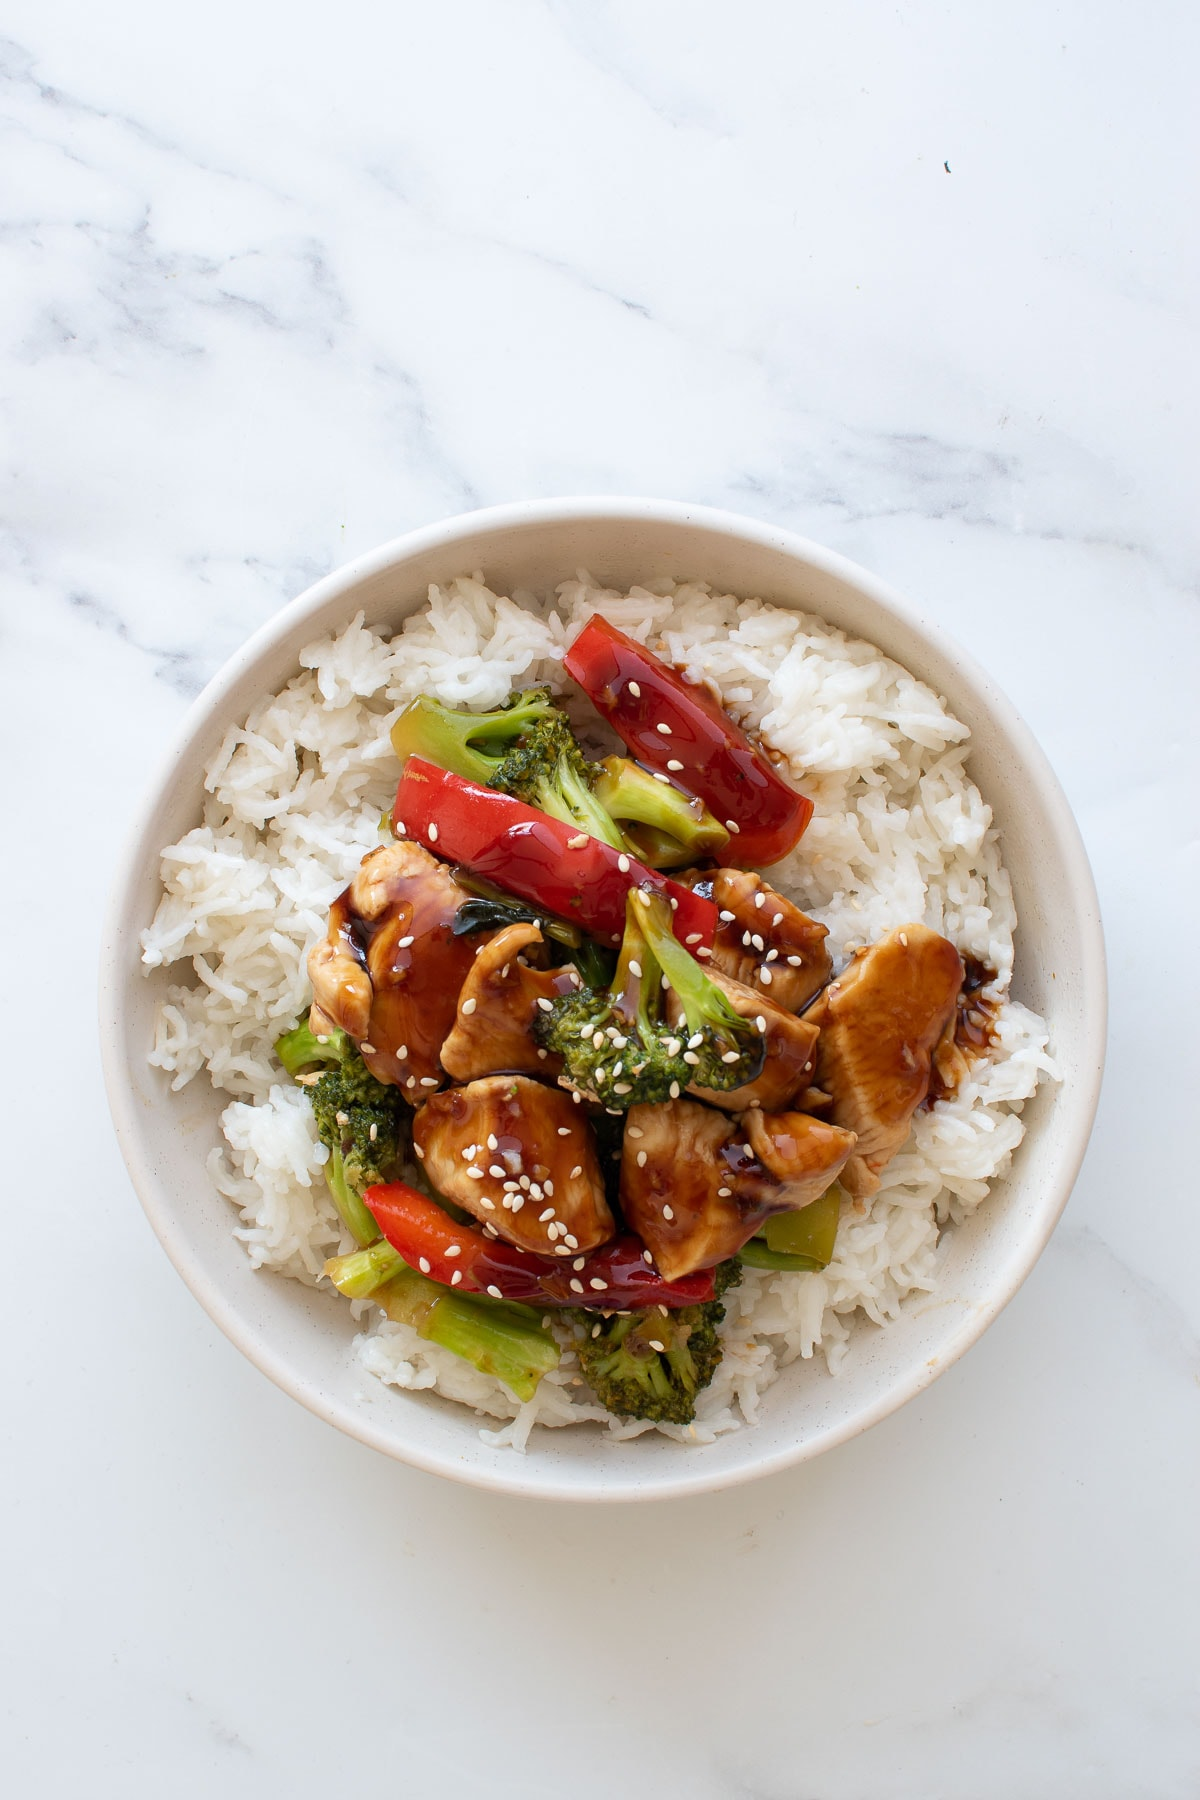 Chicken, broccoli and pepper stir fry with teriyaki sauce on top of rice.